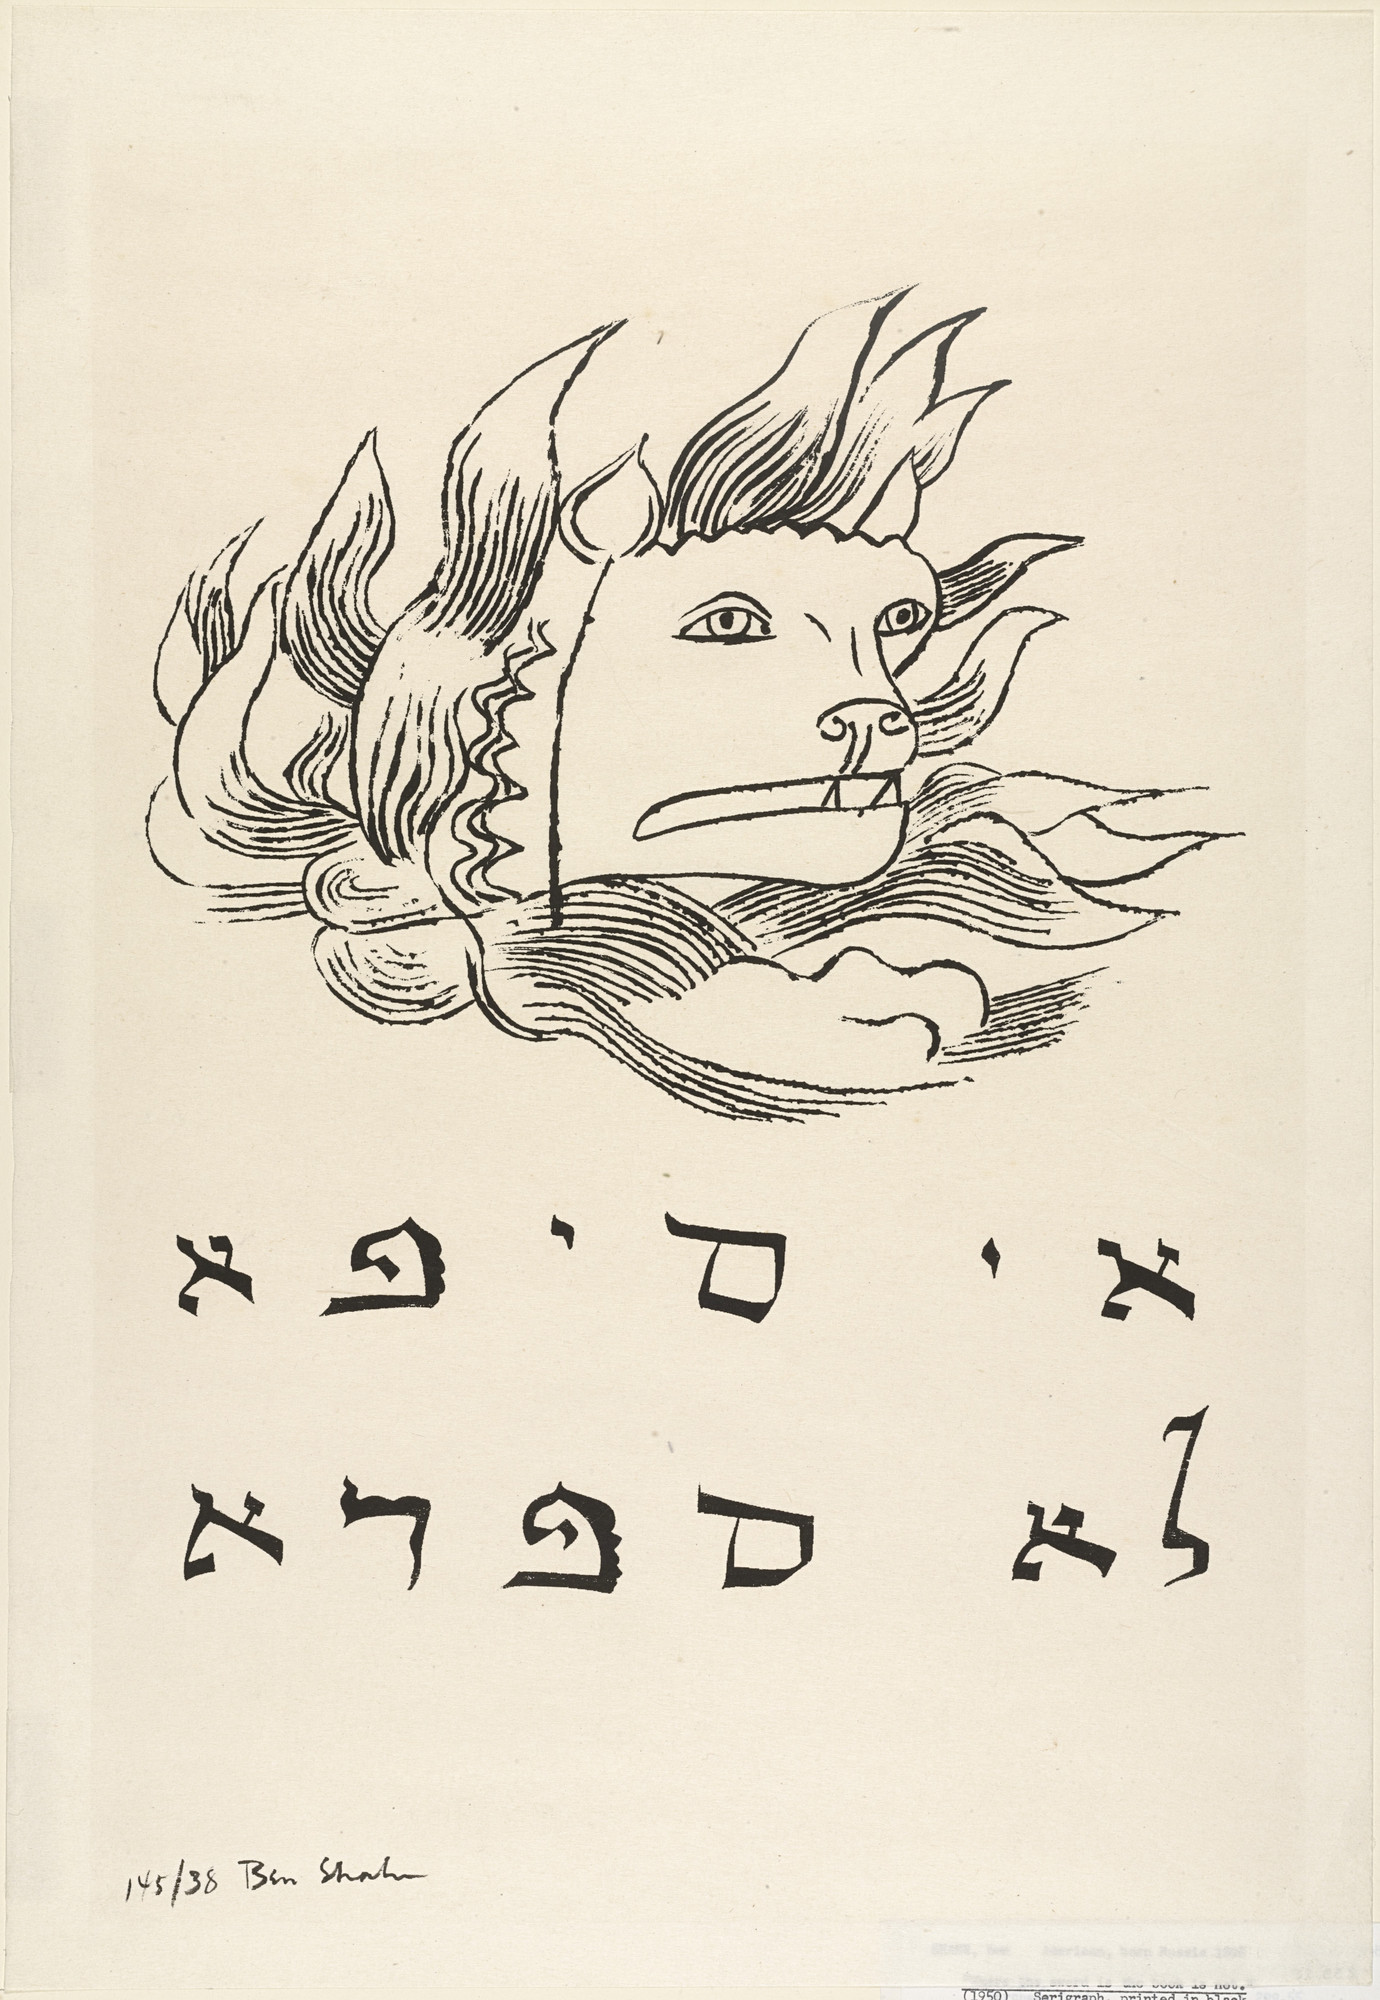 Ben Shahn. Where There is a Book There is No Sword. 1950